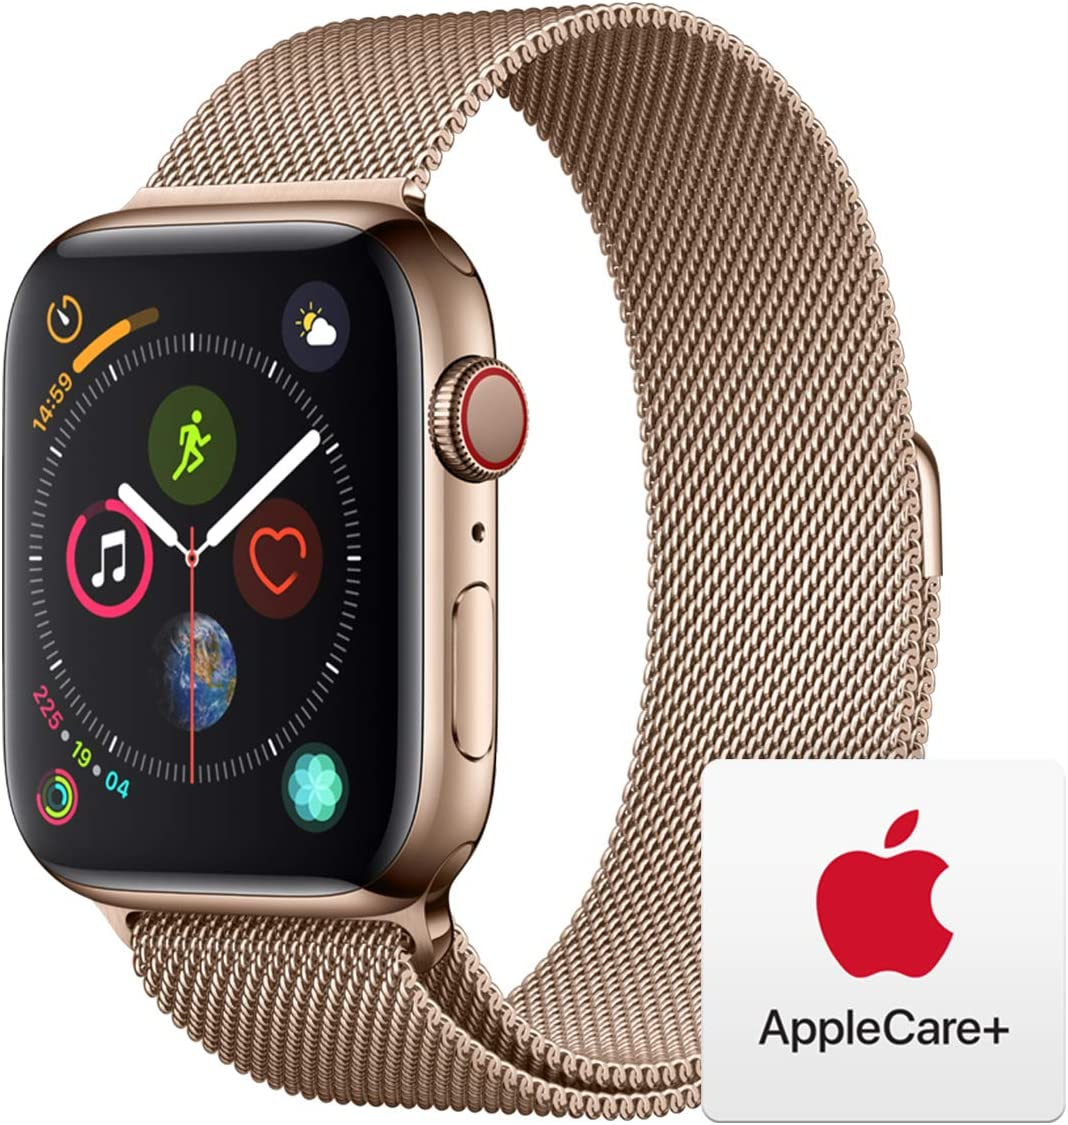 Apple Watch Series 4 (GPS + Cellular, 44mm) - Gold Stainless Steel Case with Gold Milanese Loop with AppleCare+ Bundle